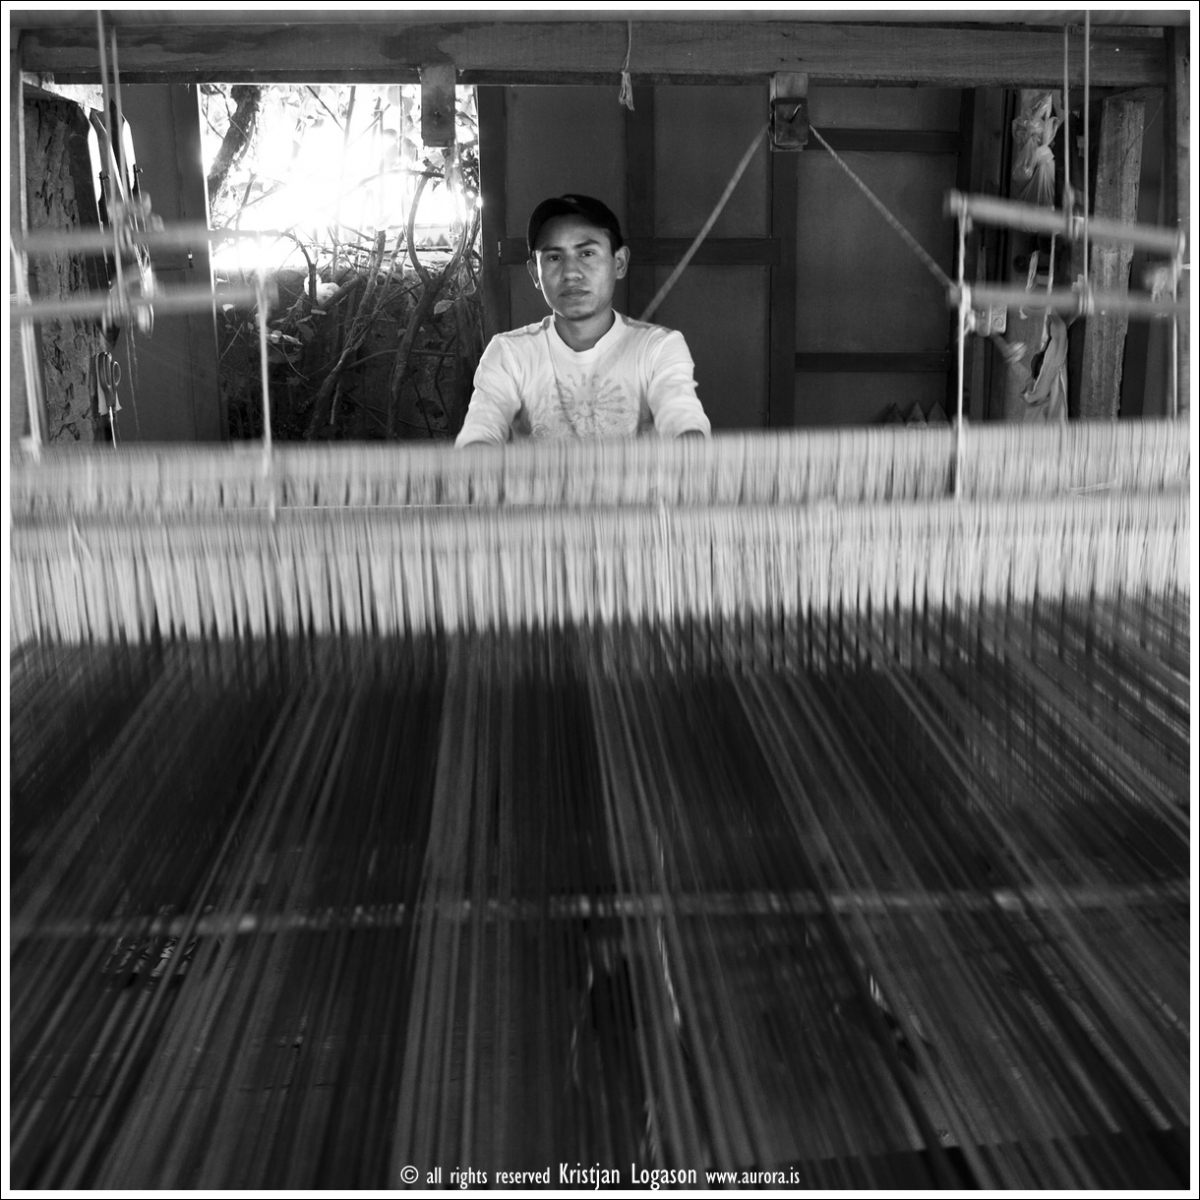 Man Weaving fabric in Ataco on Ruta de flores in the Sonsonate district of El Salvador